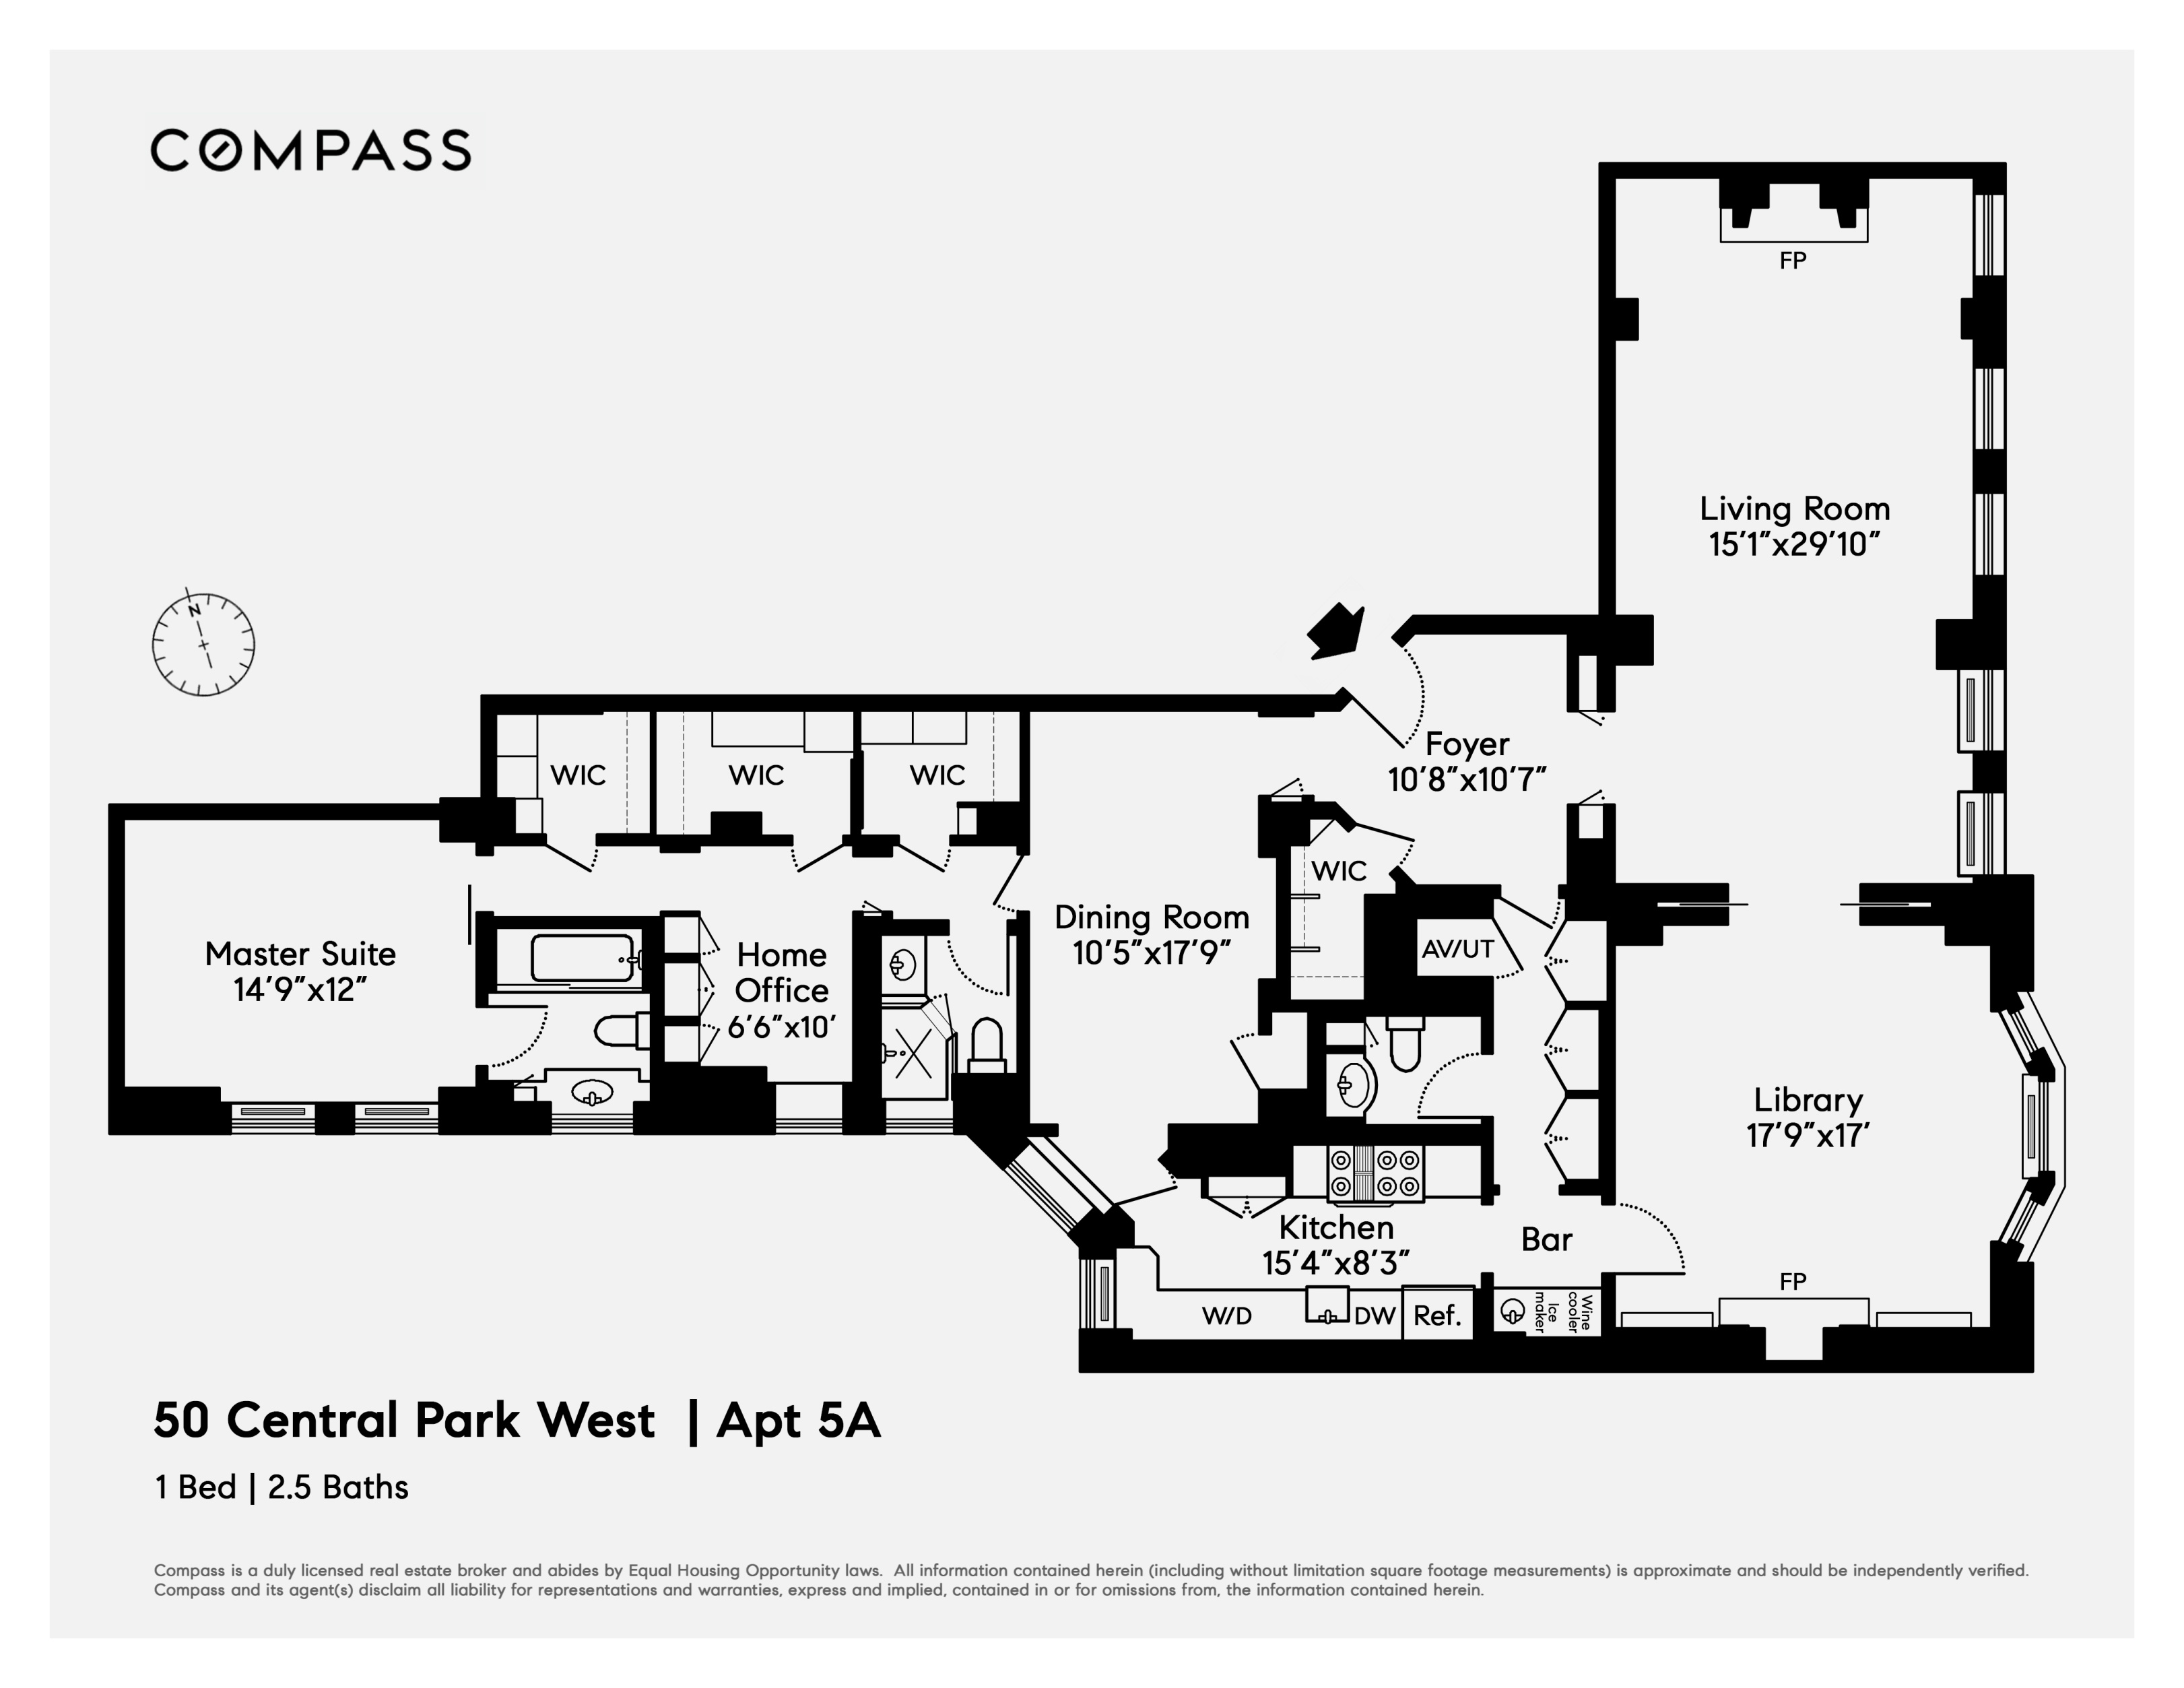 50 Central Park West, Unit 5A Upper West Side, Manhattan, NY 10023 on